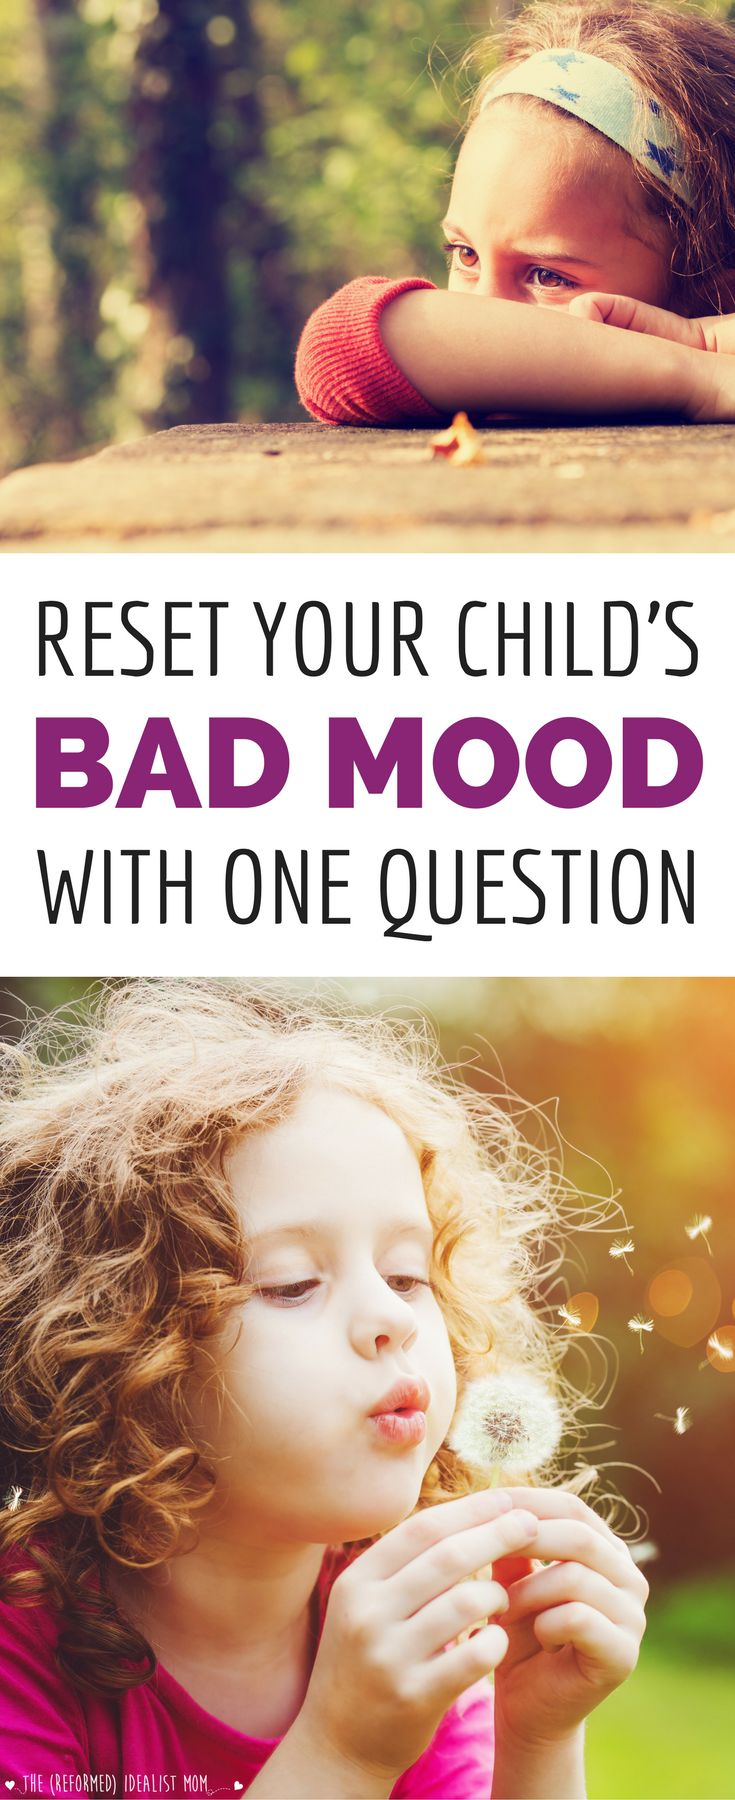 One simple question that will RESET your kid's bad mood! Teach your tween or preteen this phrase NOW before you hit the moody teenage years. *Love this practical parenting tip! via @kellyjholmes